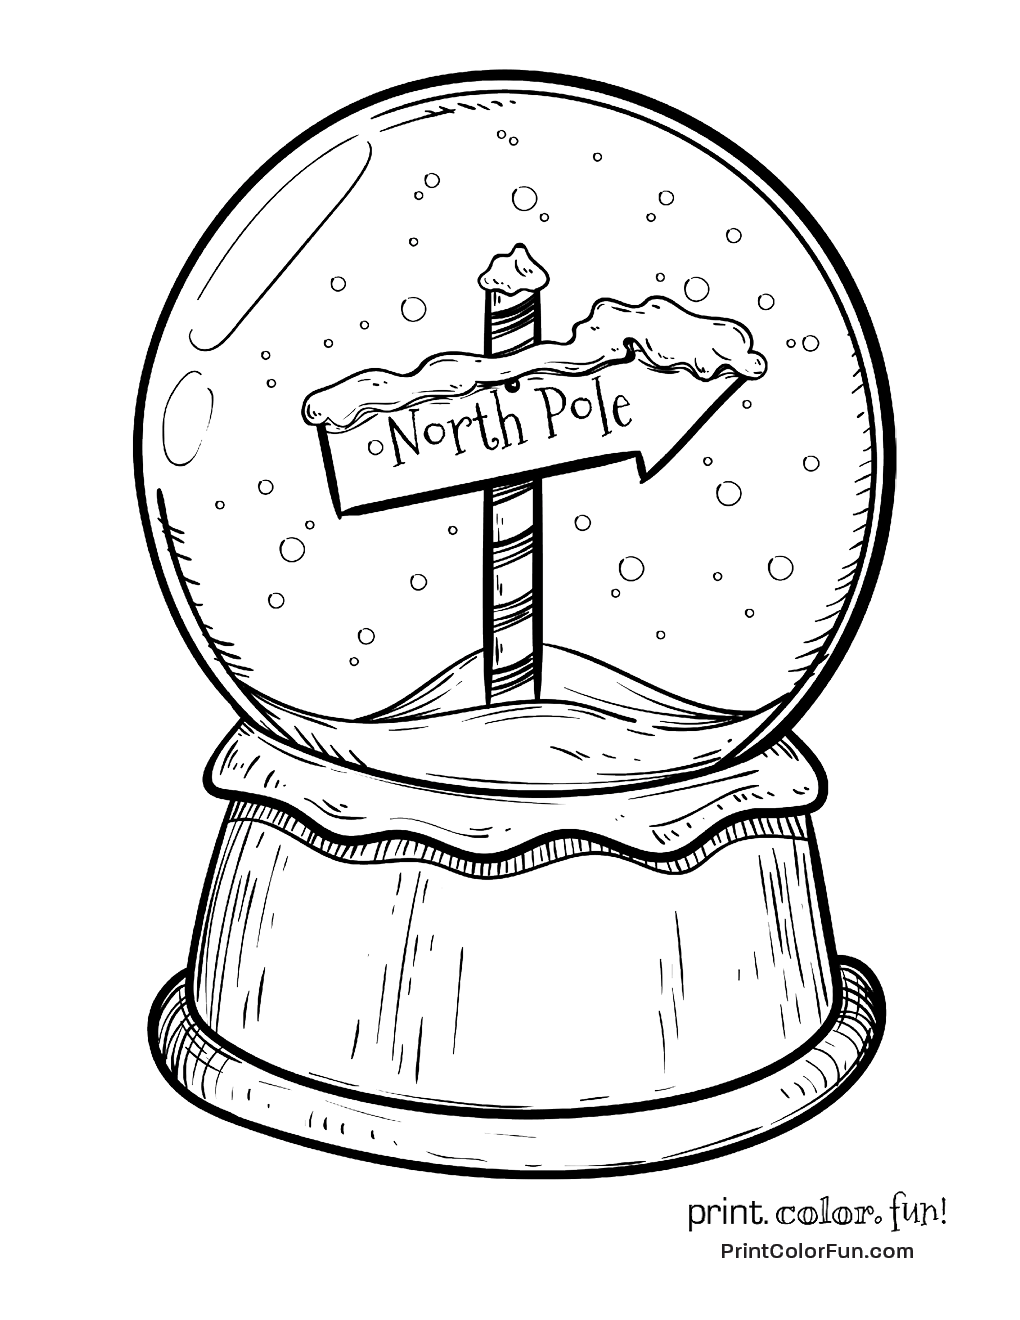 1020x1320 Christmas Snow Globe With North Pole Sign Coloring Page